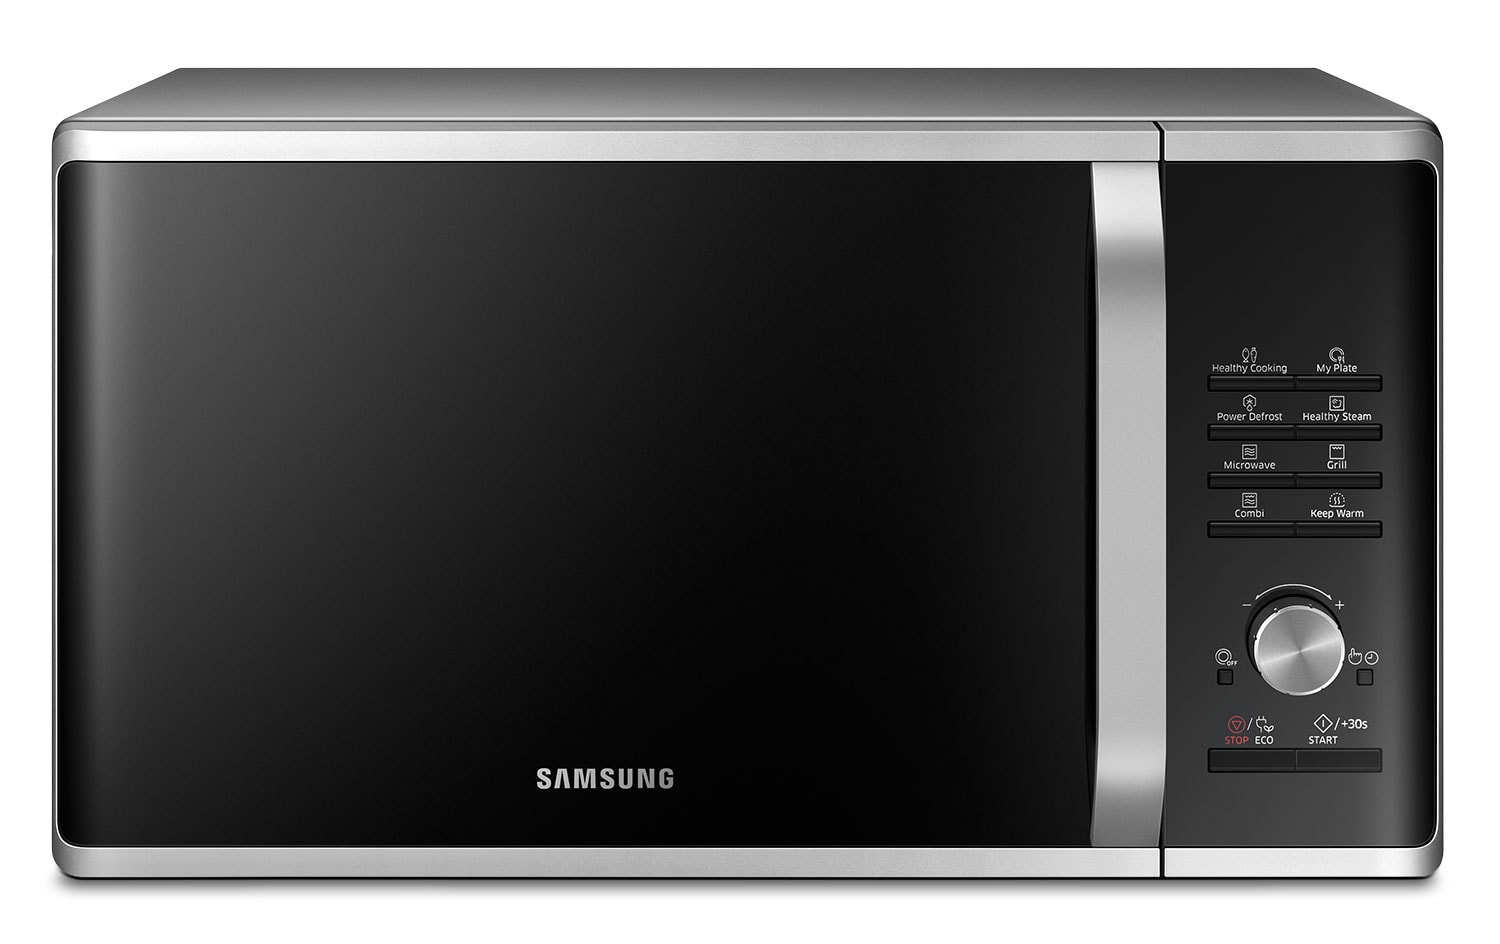 Cooking Products - Samsung Stainless Steel Countertop Microwave (1.1 Cu. Ft.) - MS11J5023AS/AC